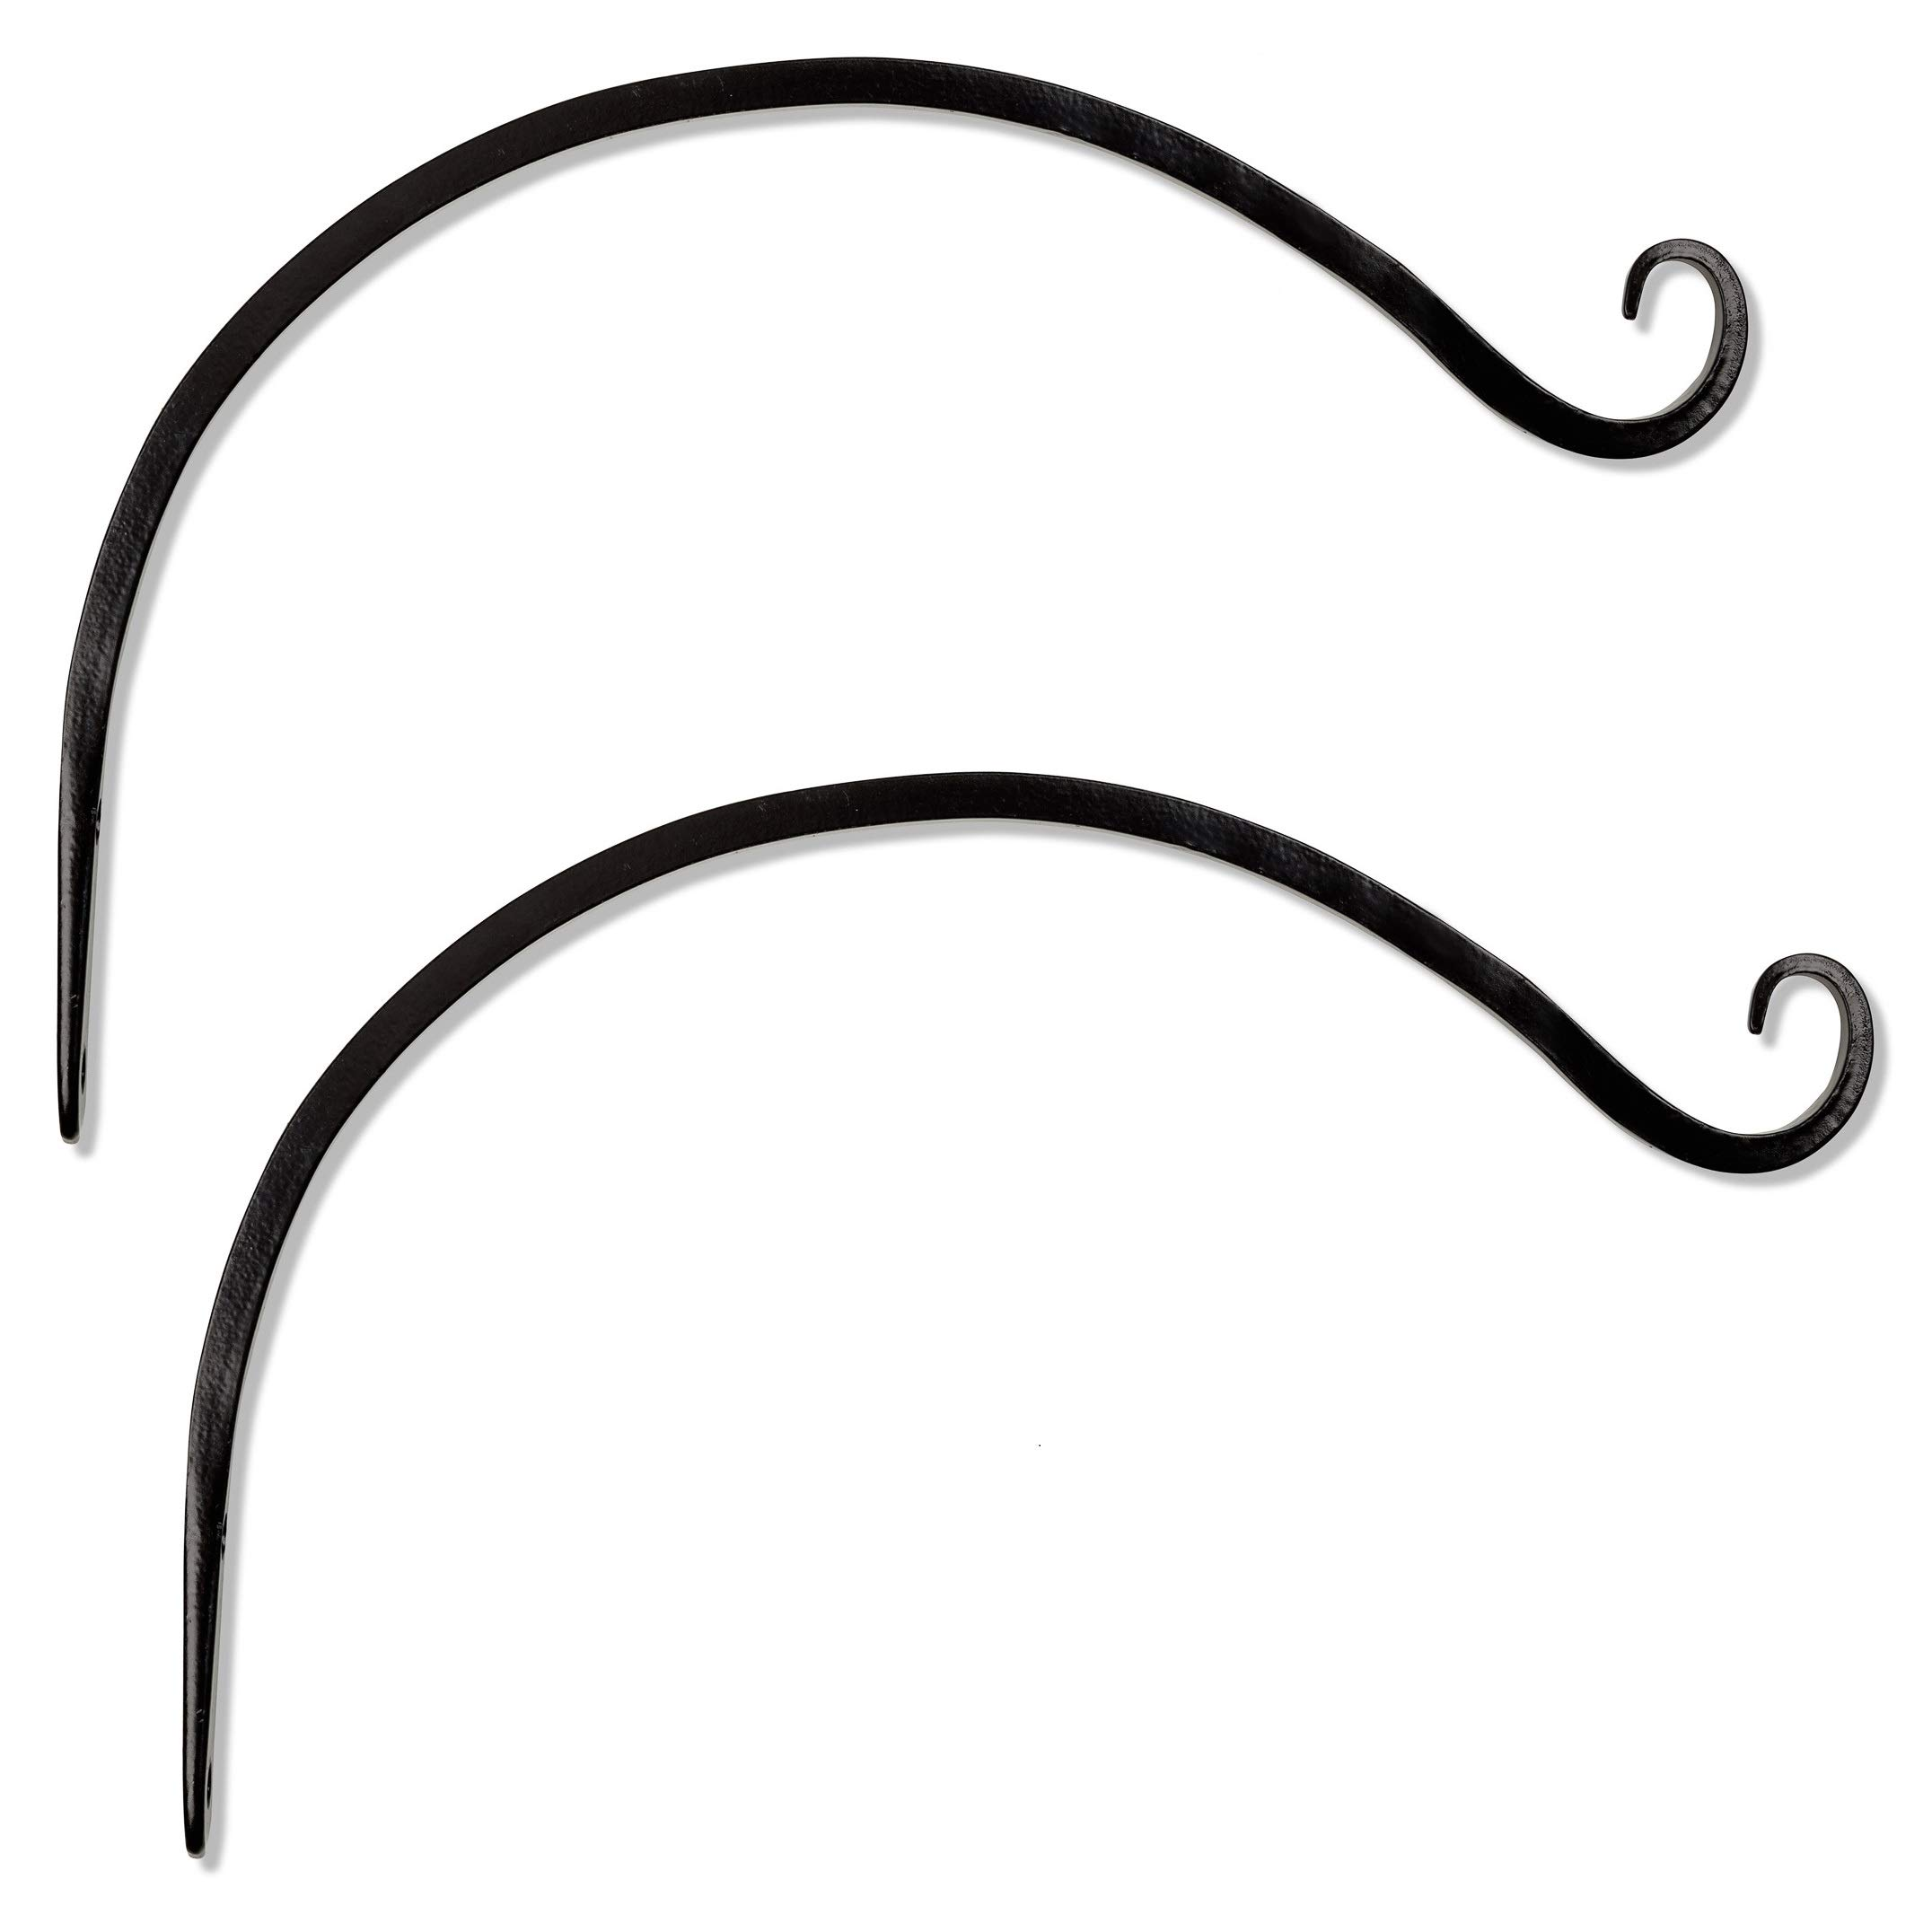 GrayBunny GB-6820B Hand Forged Curved Hook, 14 Inch, Black, 2-Pack, For Bird Feeders, Planters, Lanterns, Wind Chimes, As Wall Brackets and More!